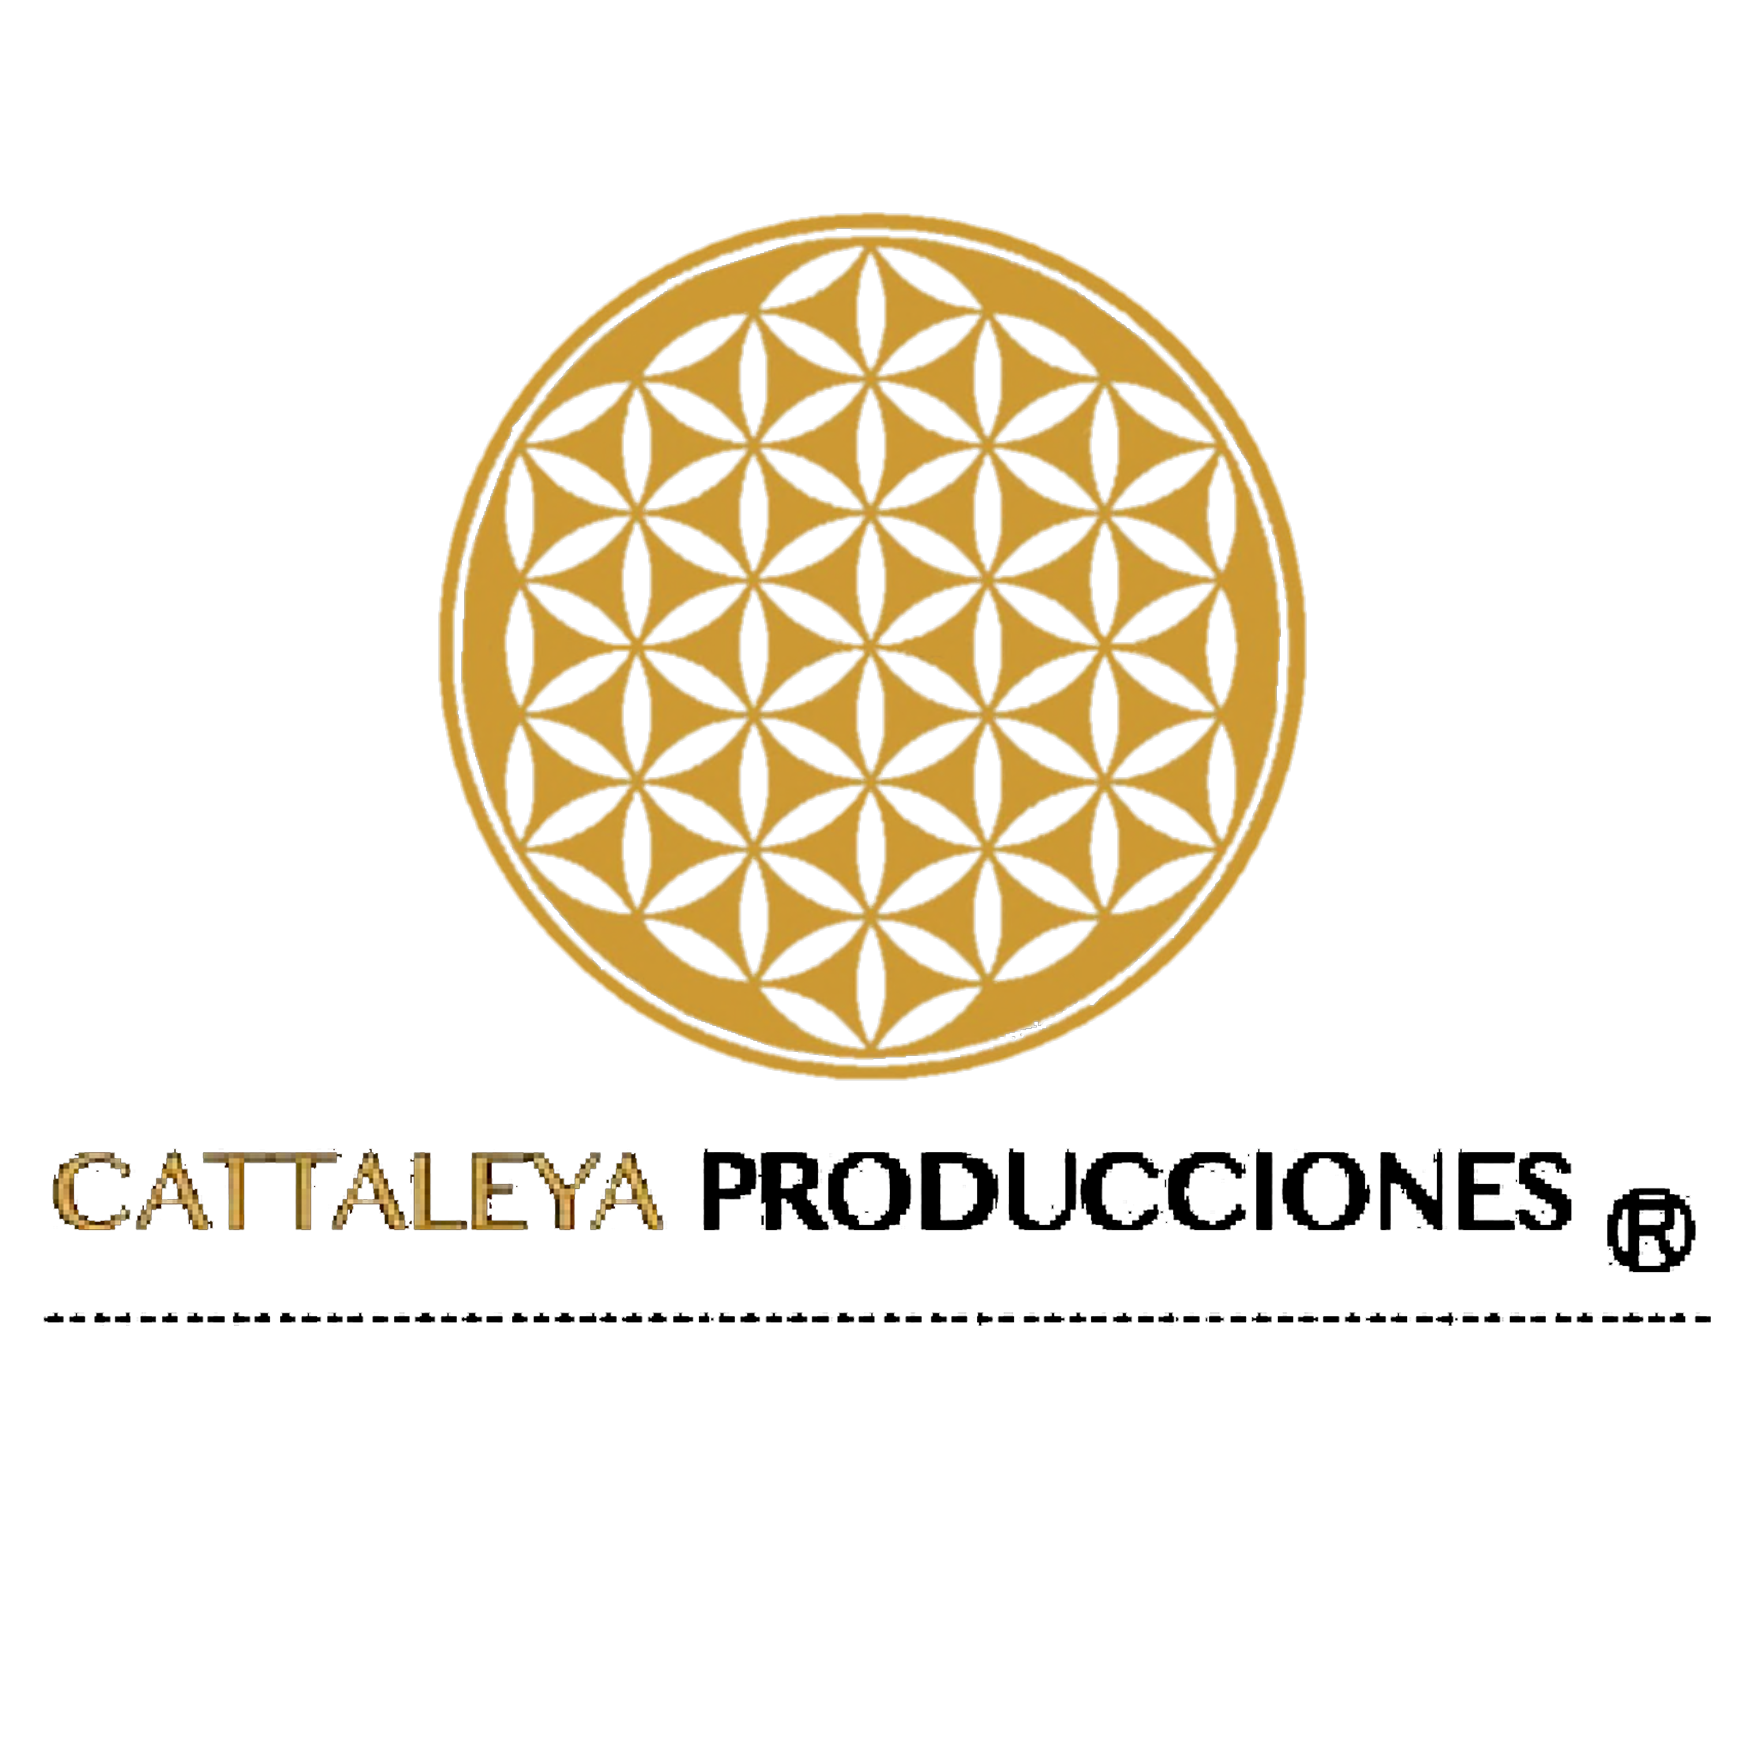 logotipo cattaleya completo.png